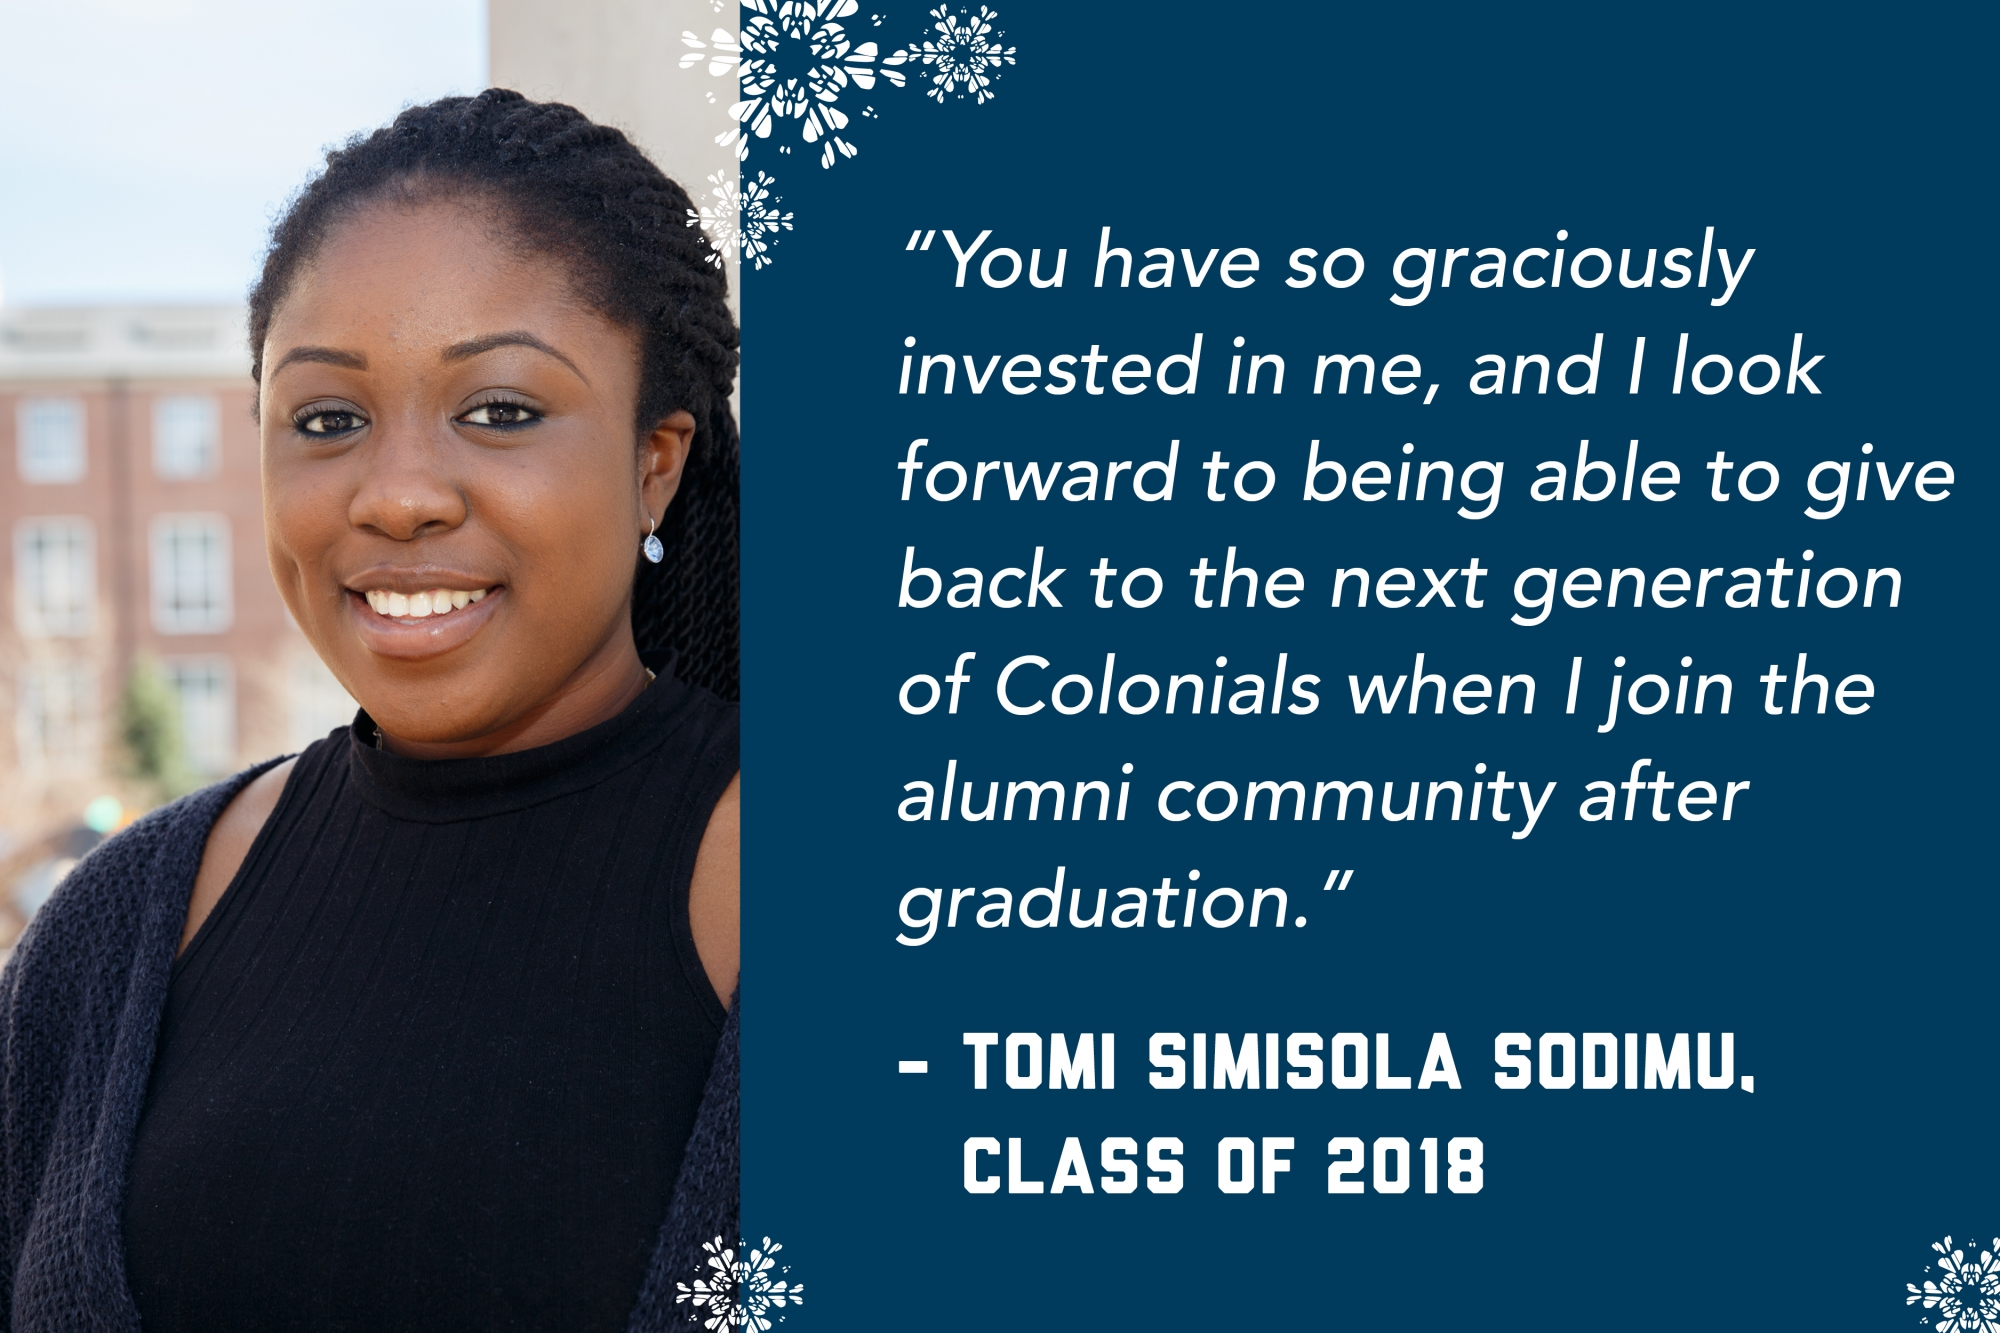 """""""You have so graciously invested in me, and I look forward to being able to give back to the next generation of Colonials when I join the alumni community after graduation."""" - Tomi Simisola Sodimu, Class of 2018"""